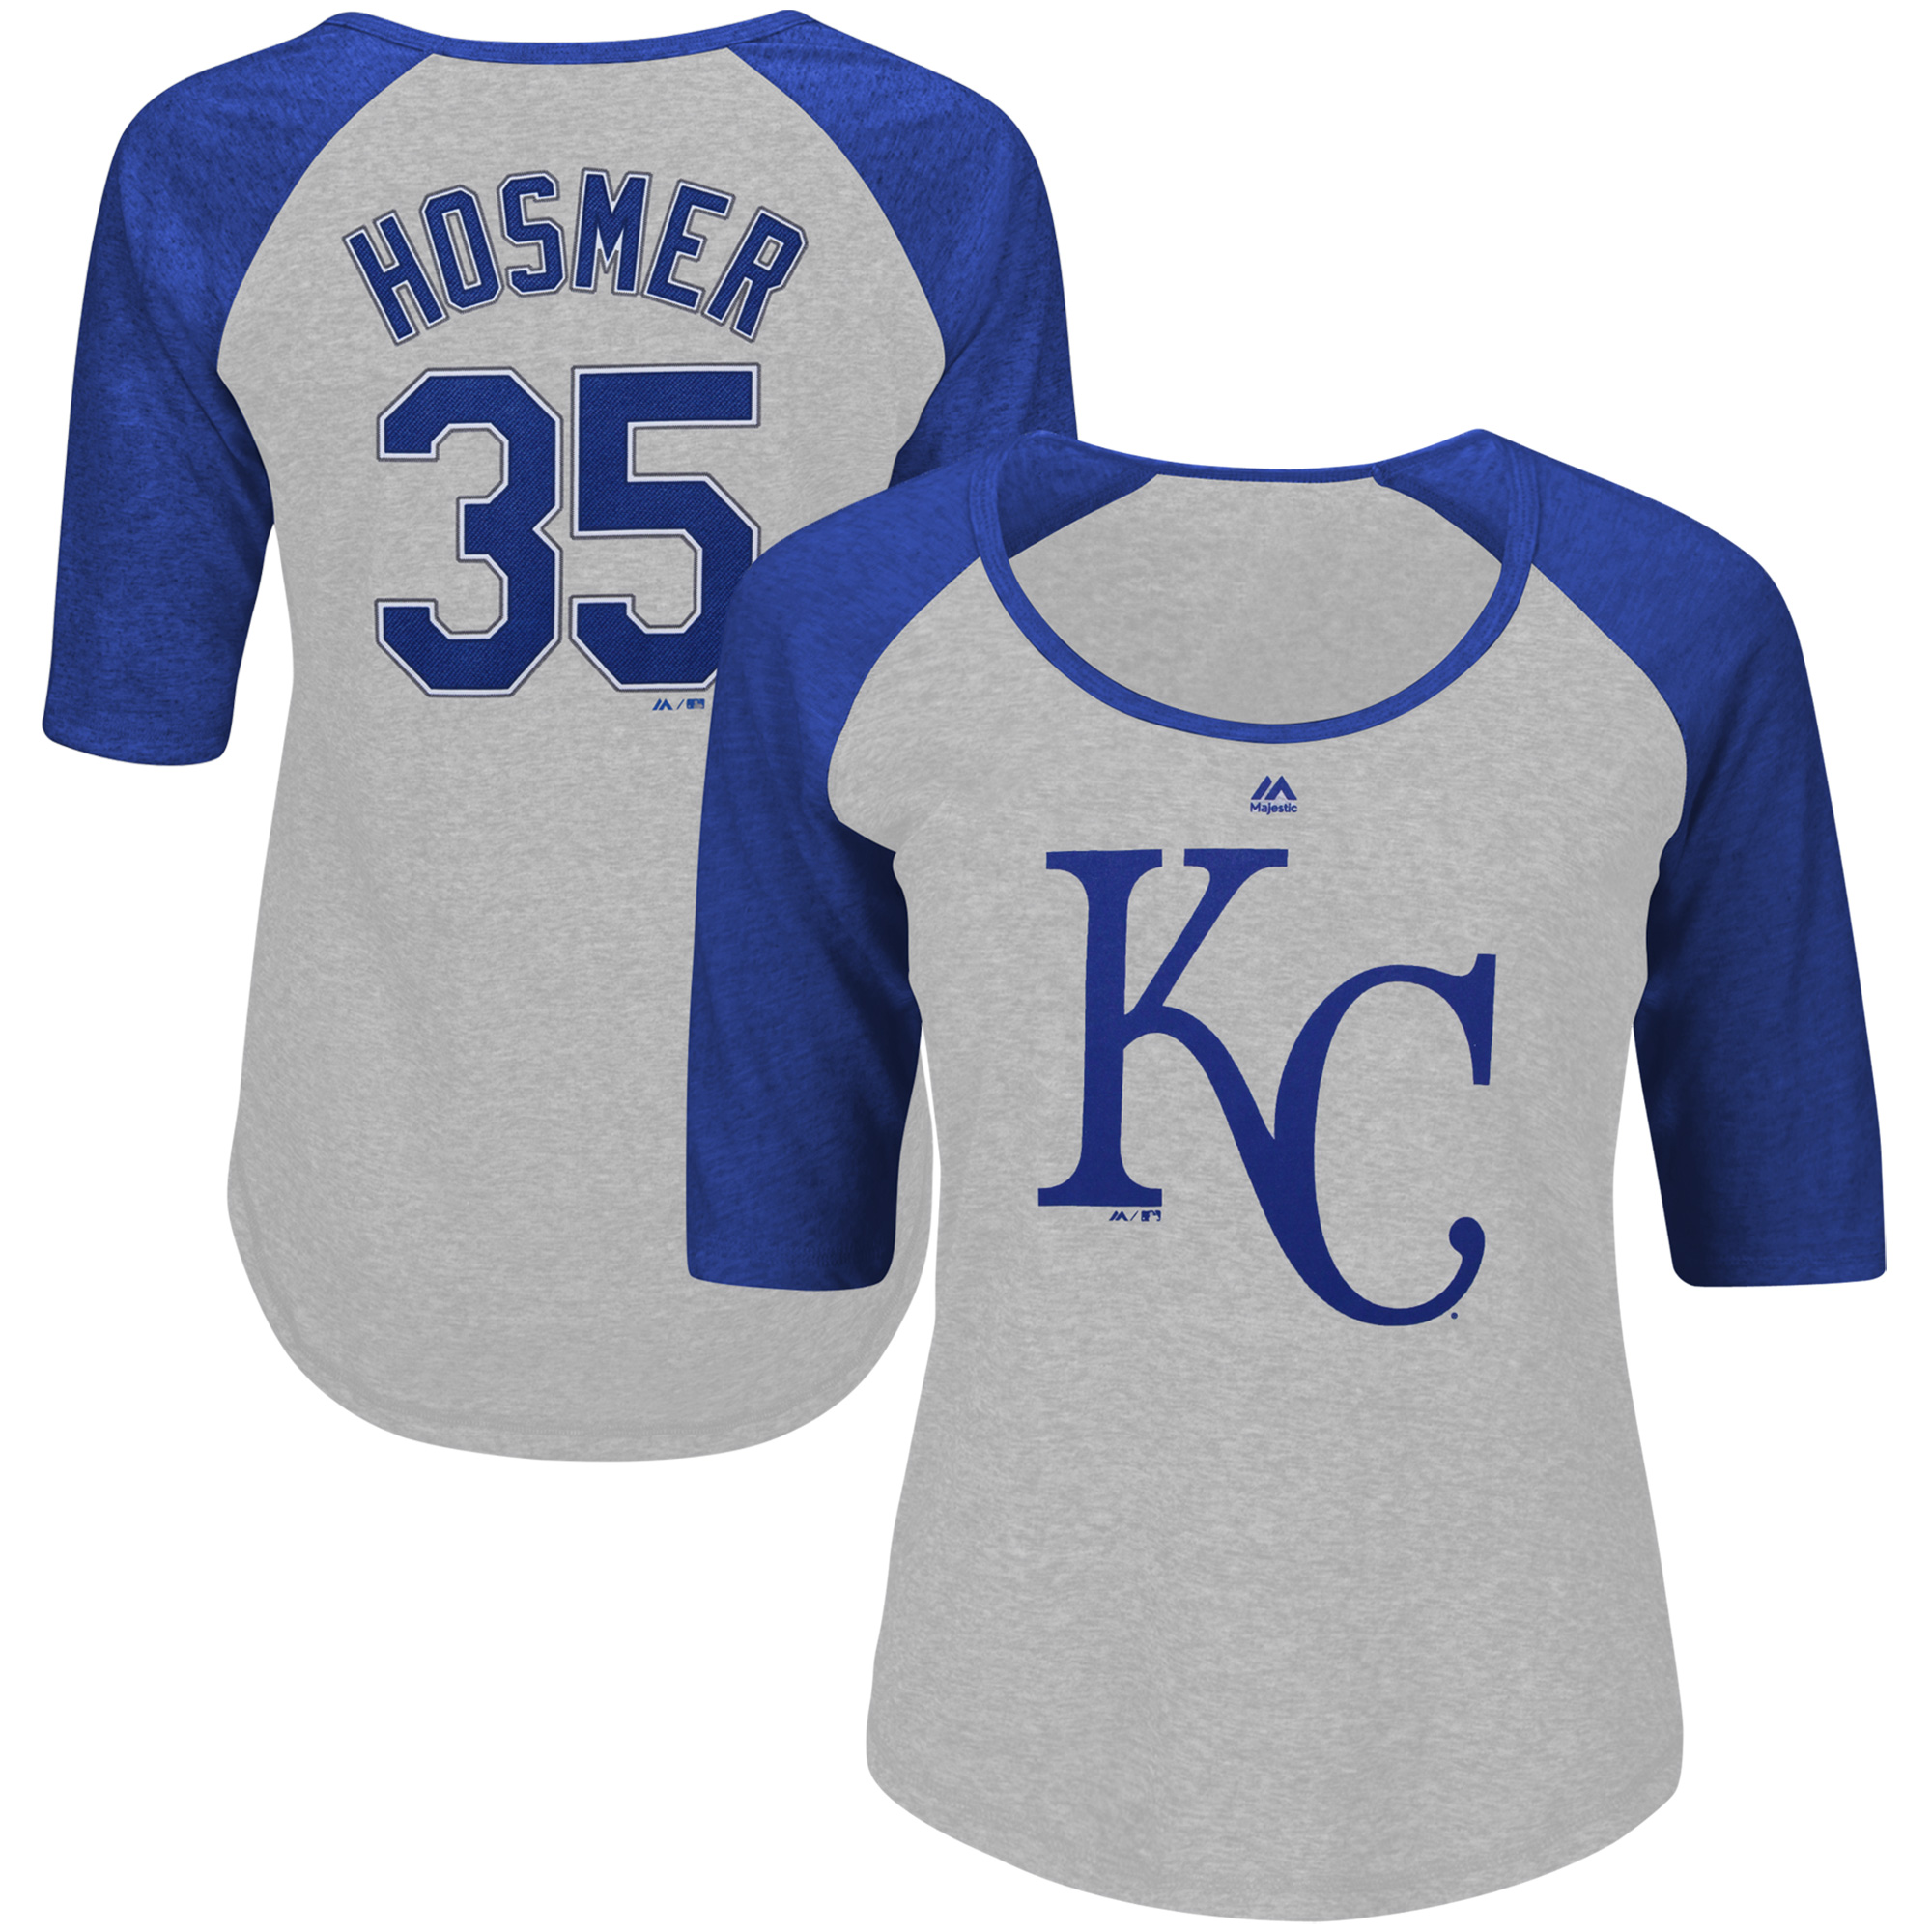 Eric Hosmer Kansas City Royals Majestic Women's Plus Size Name & Number Three-Quarter Sleeve Raglan T-Shirt - Gray